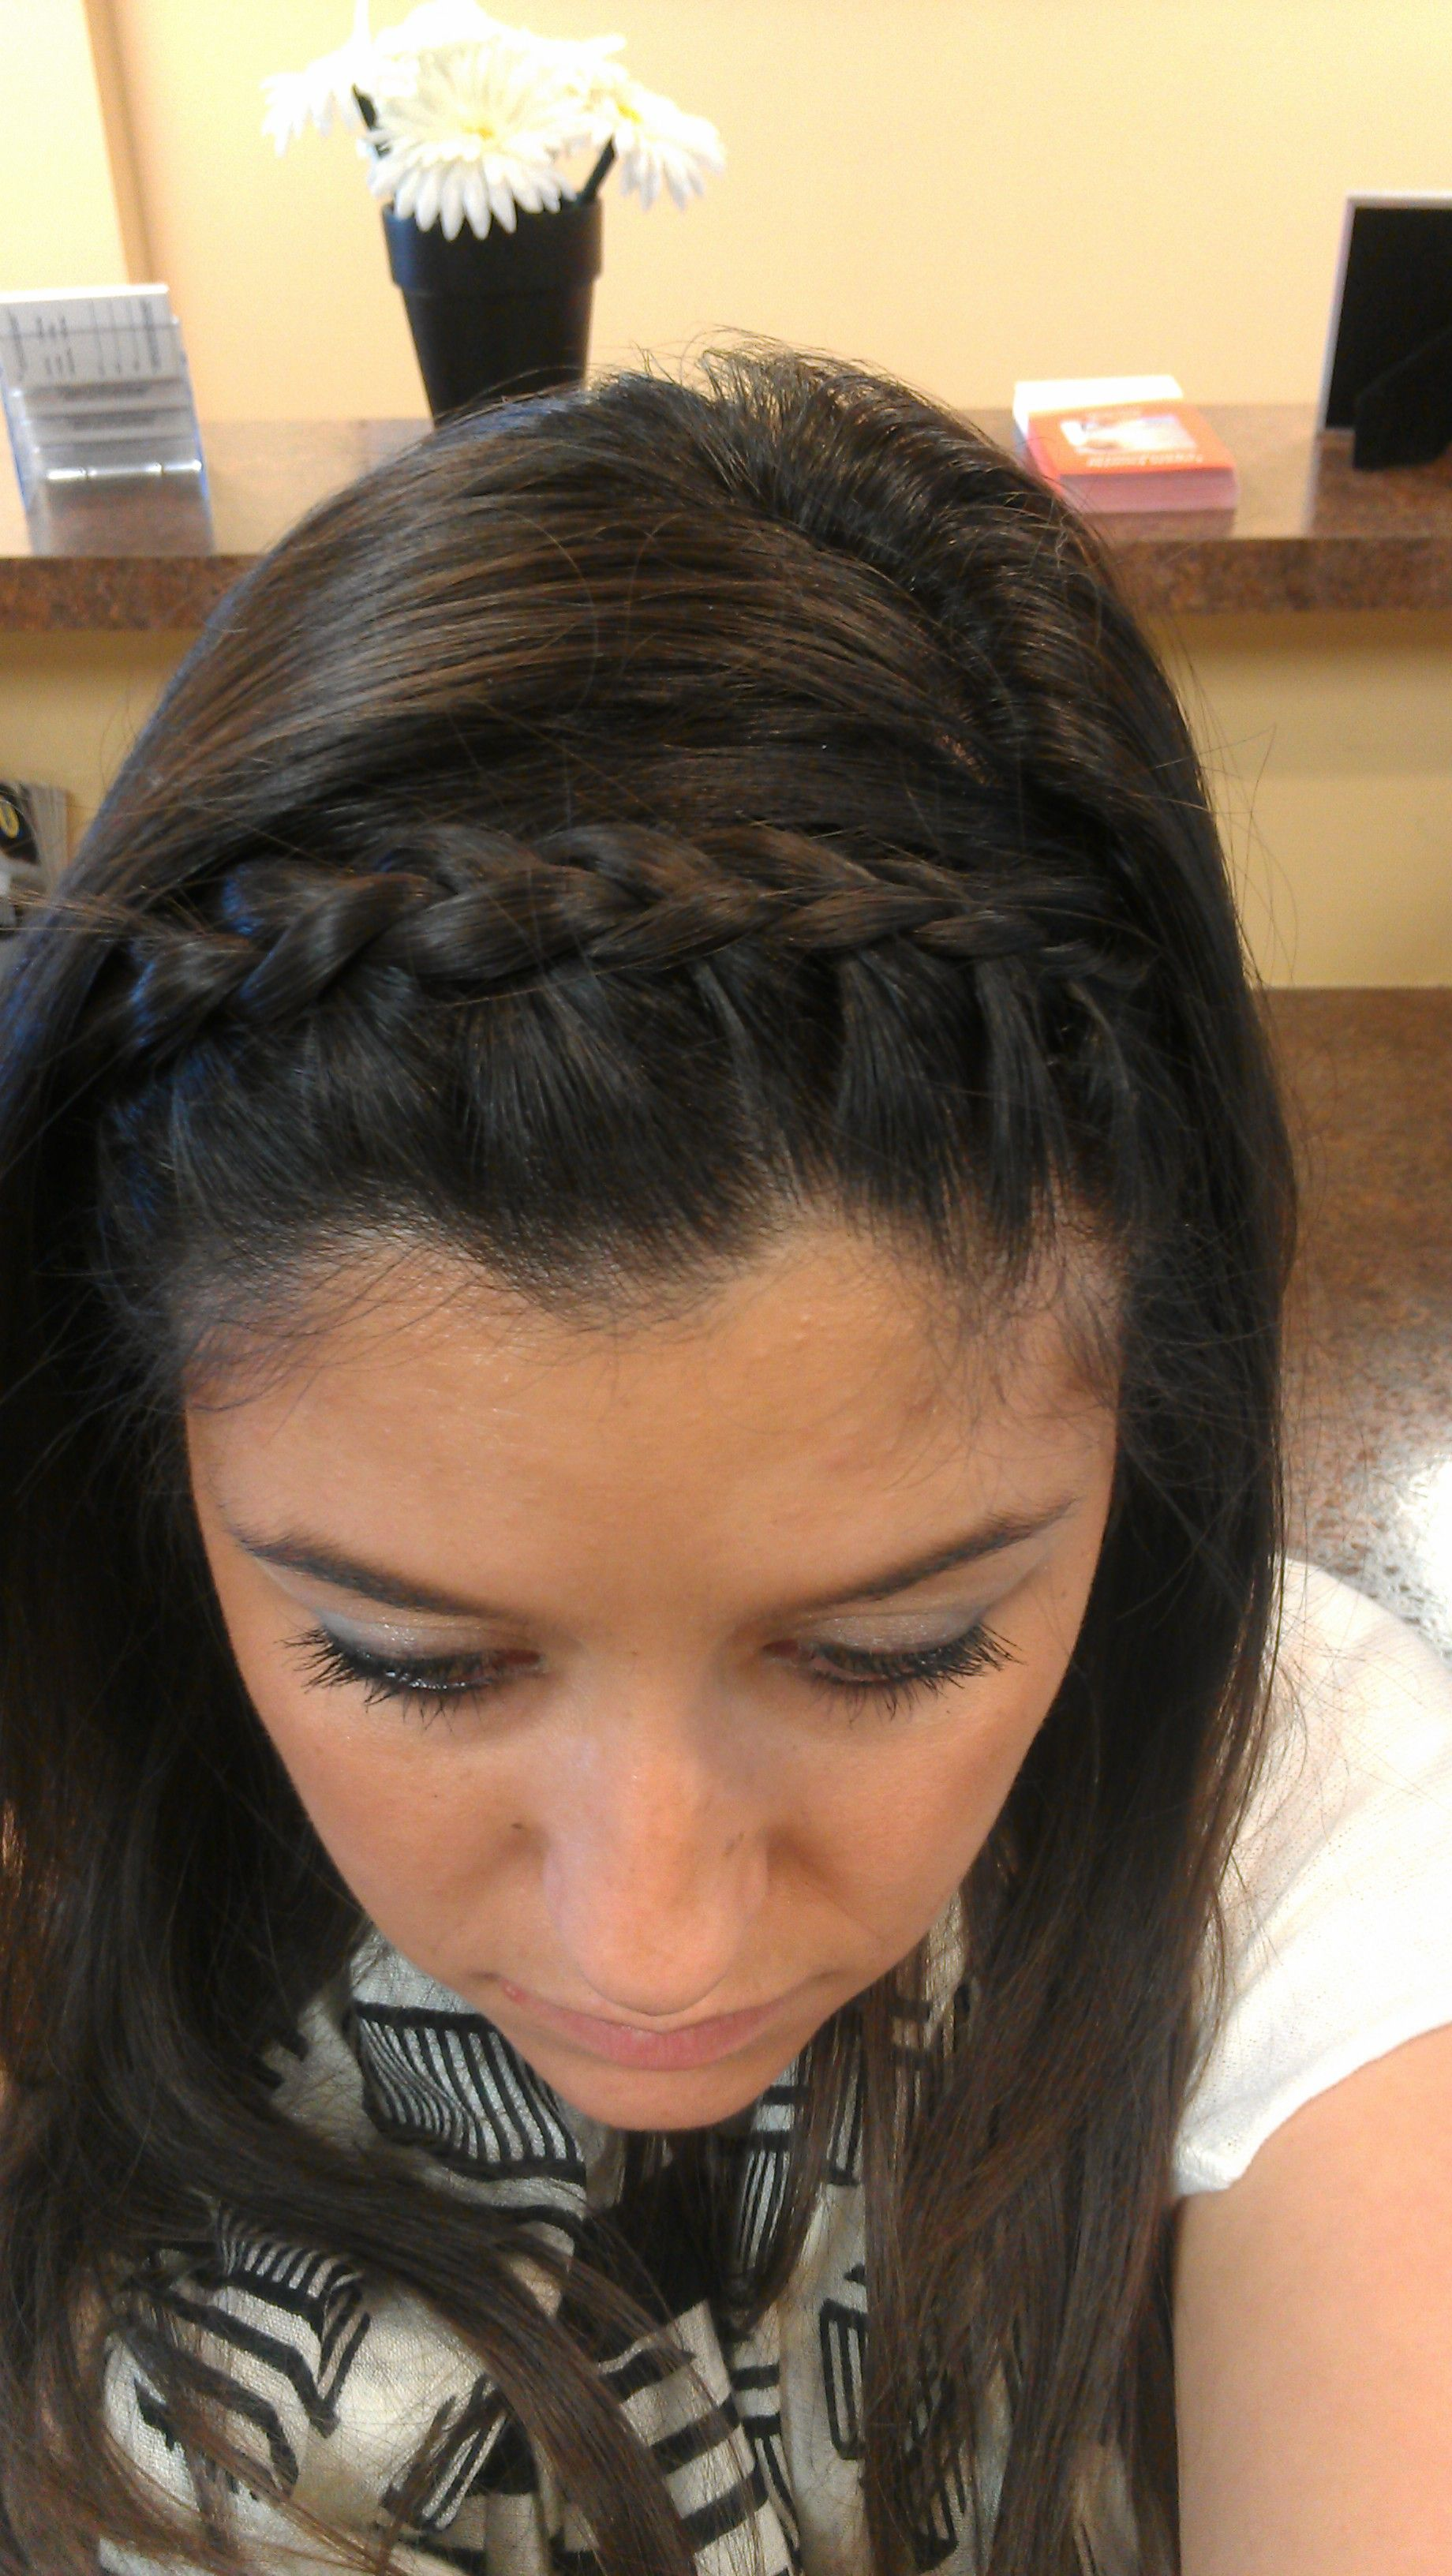 French braid headband going to do this w my bangs then have my hair